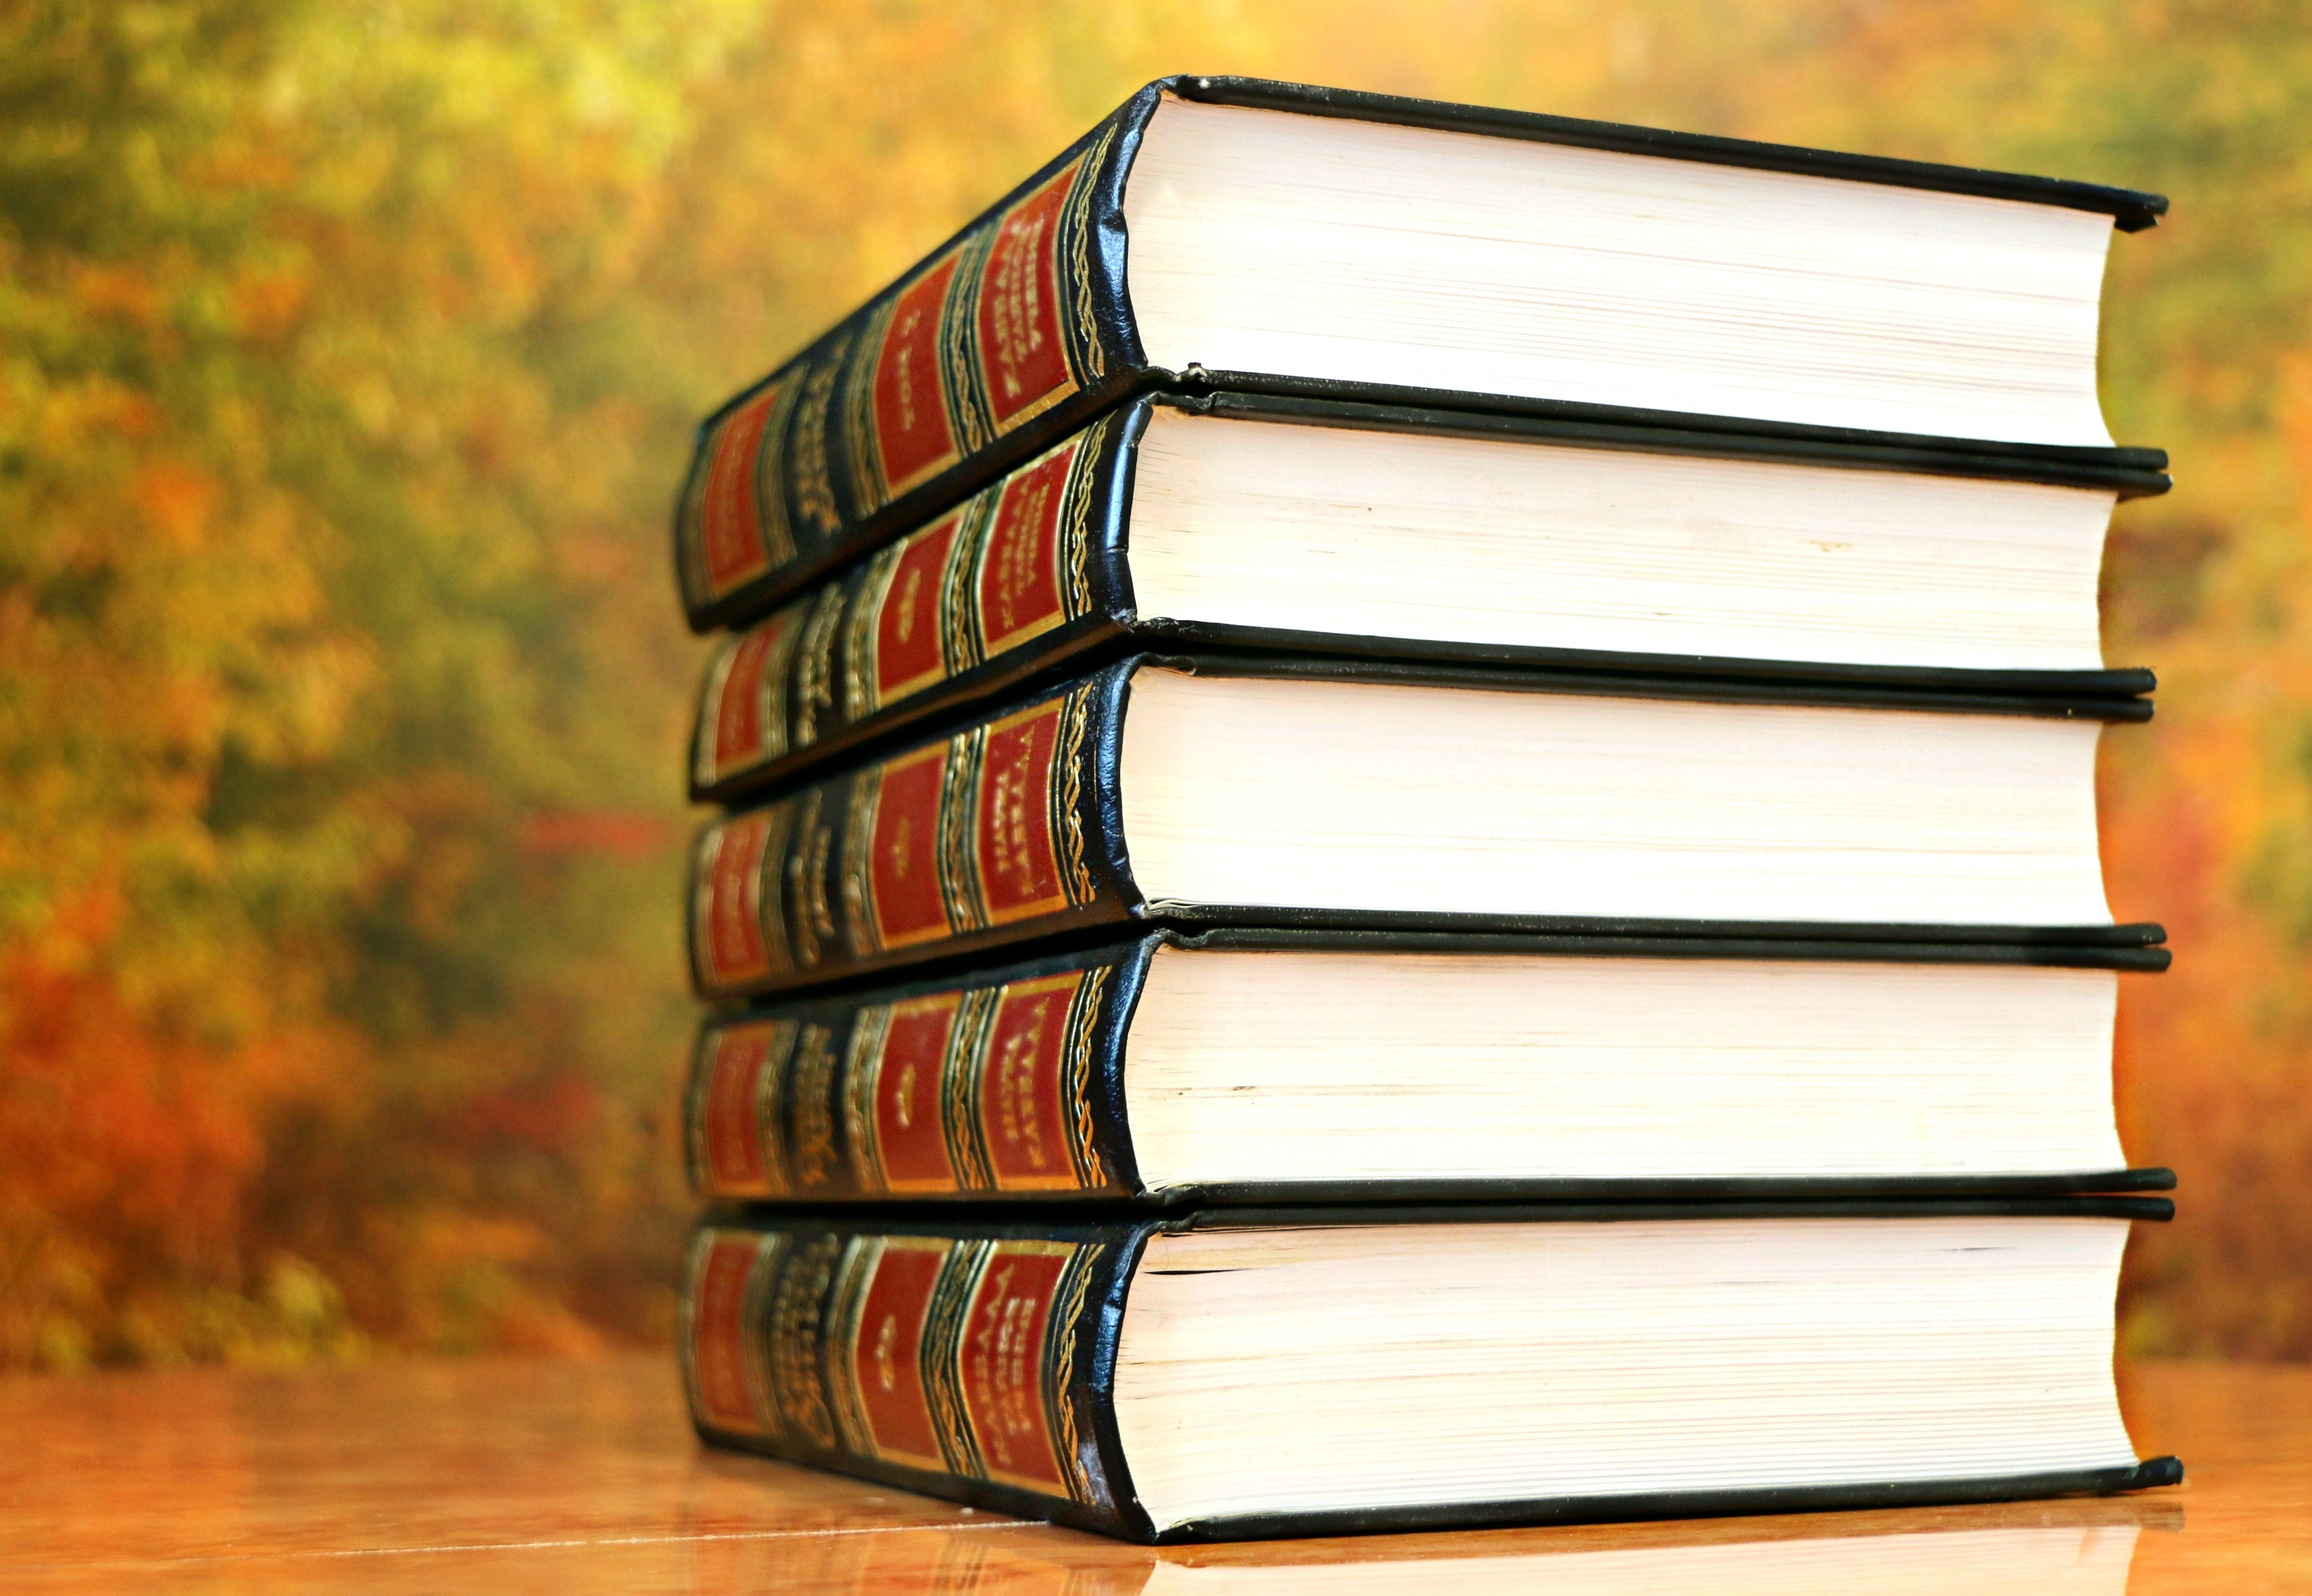 Free Stock Photo Of Book Stack, Books, Education